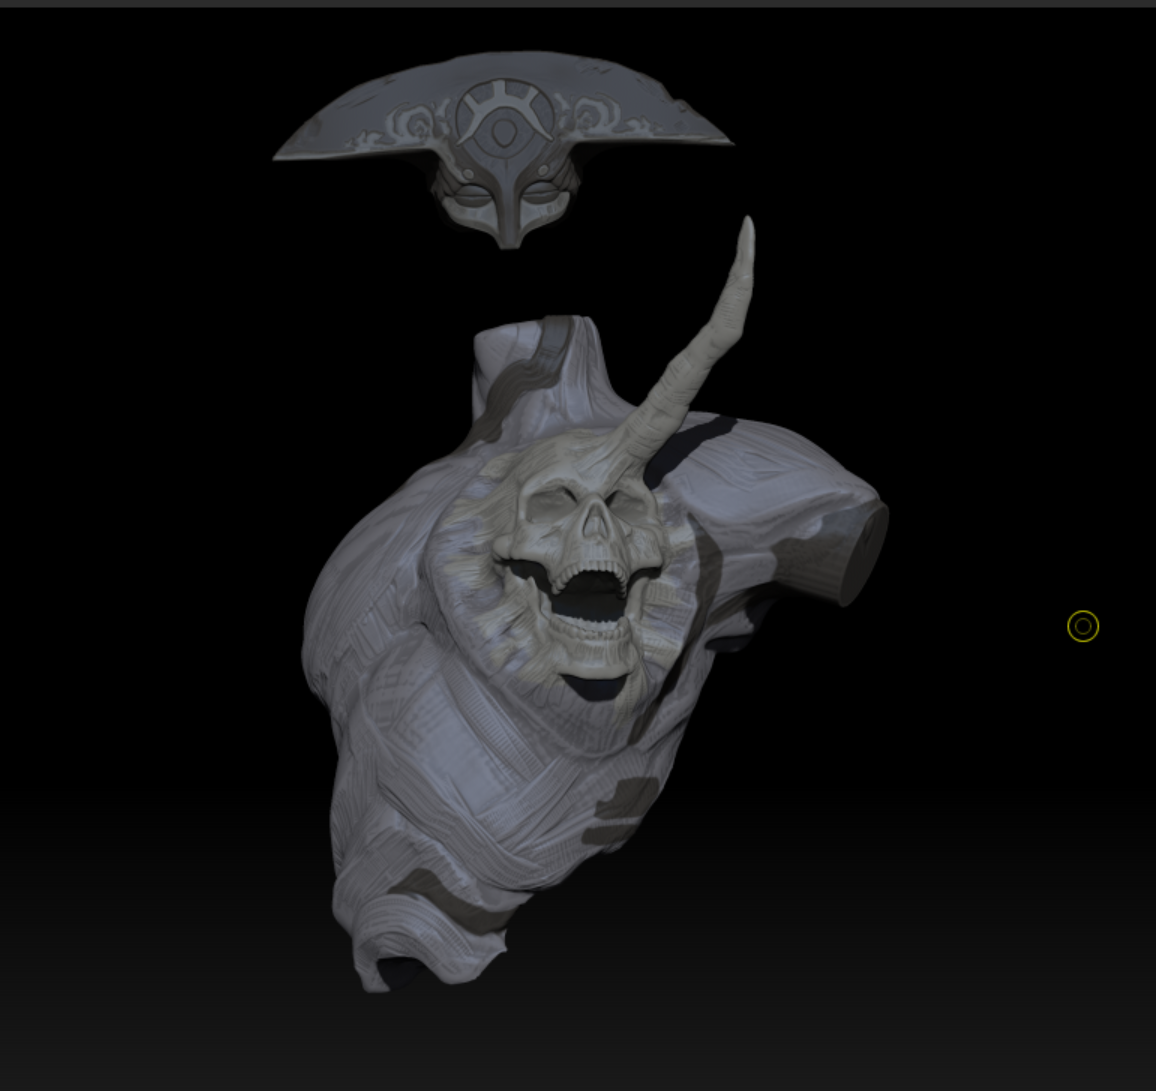 Rough sculpt of body